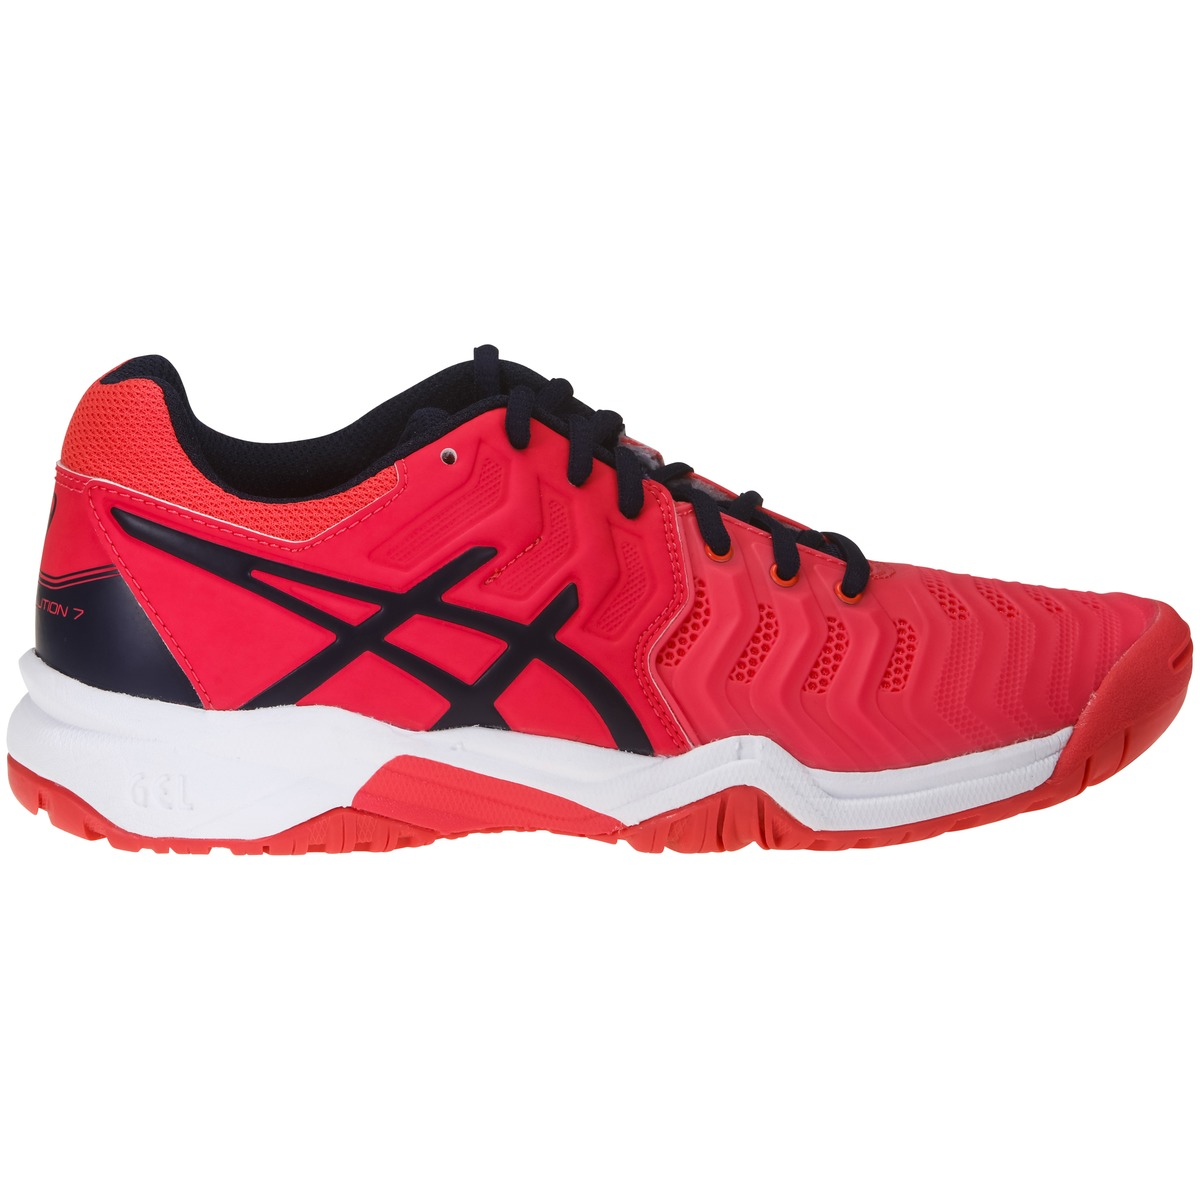 new style 15eba fee42 röd asics gel resolution 7 gs tennissko junior tennisskor barn